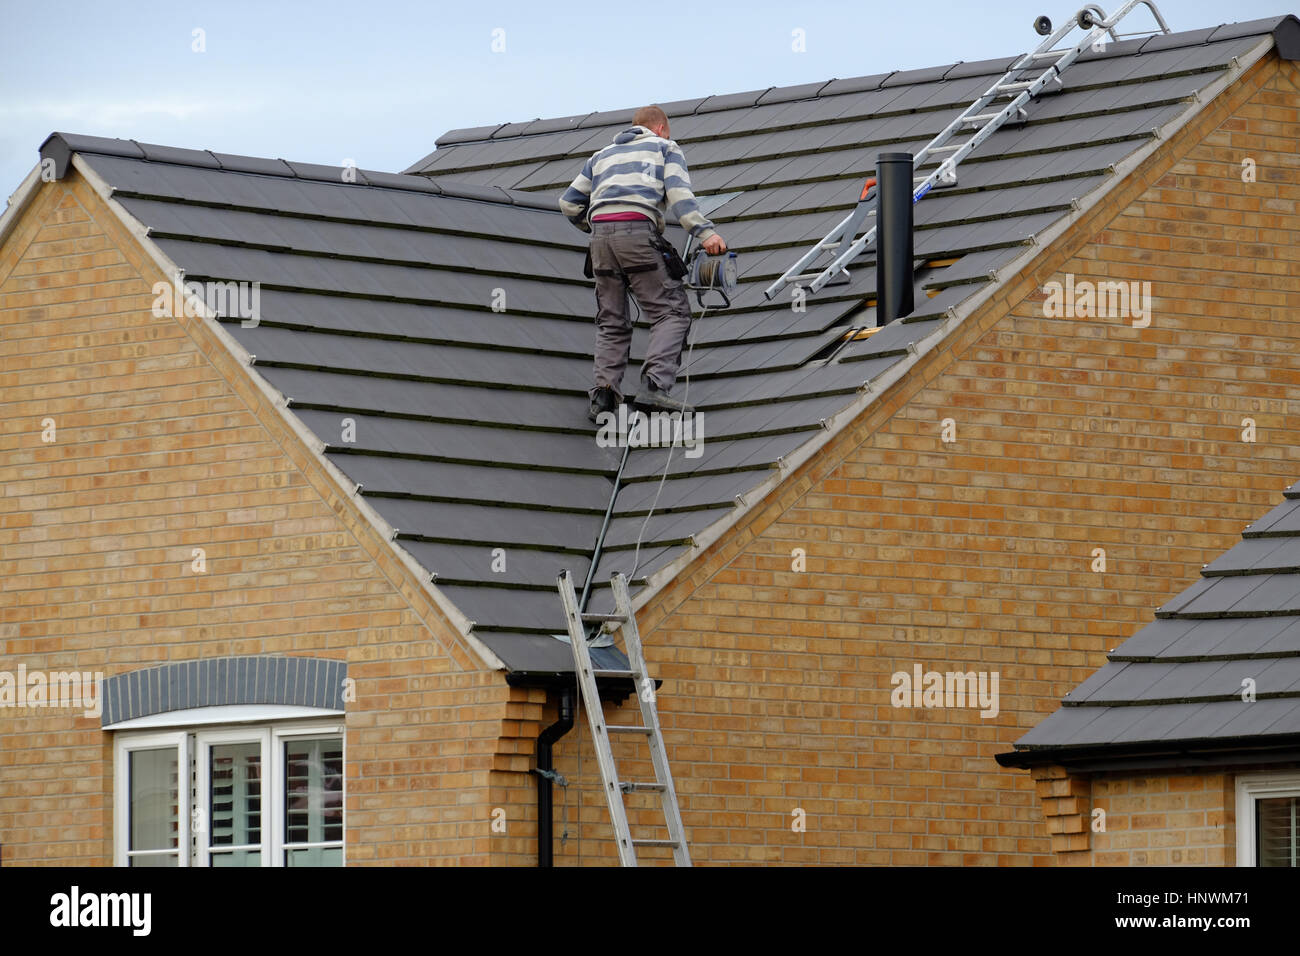 Workman on a house roof installing a chimney - Stock Image